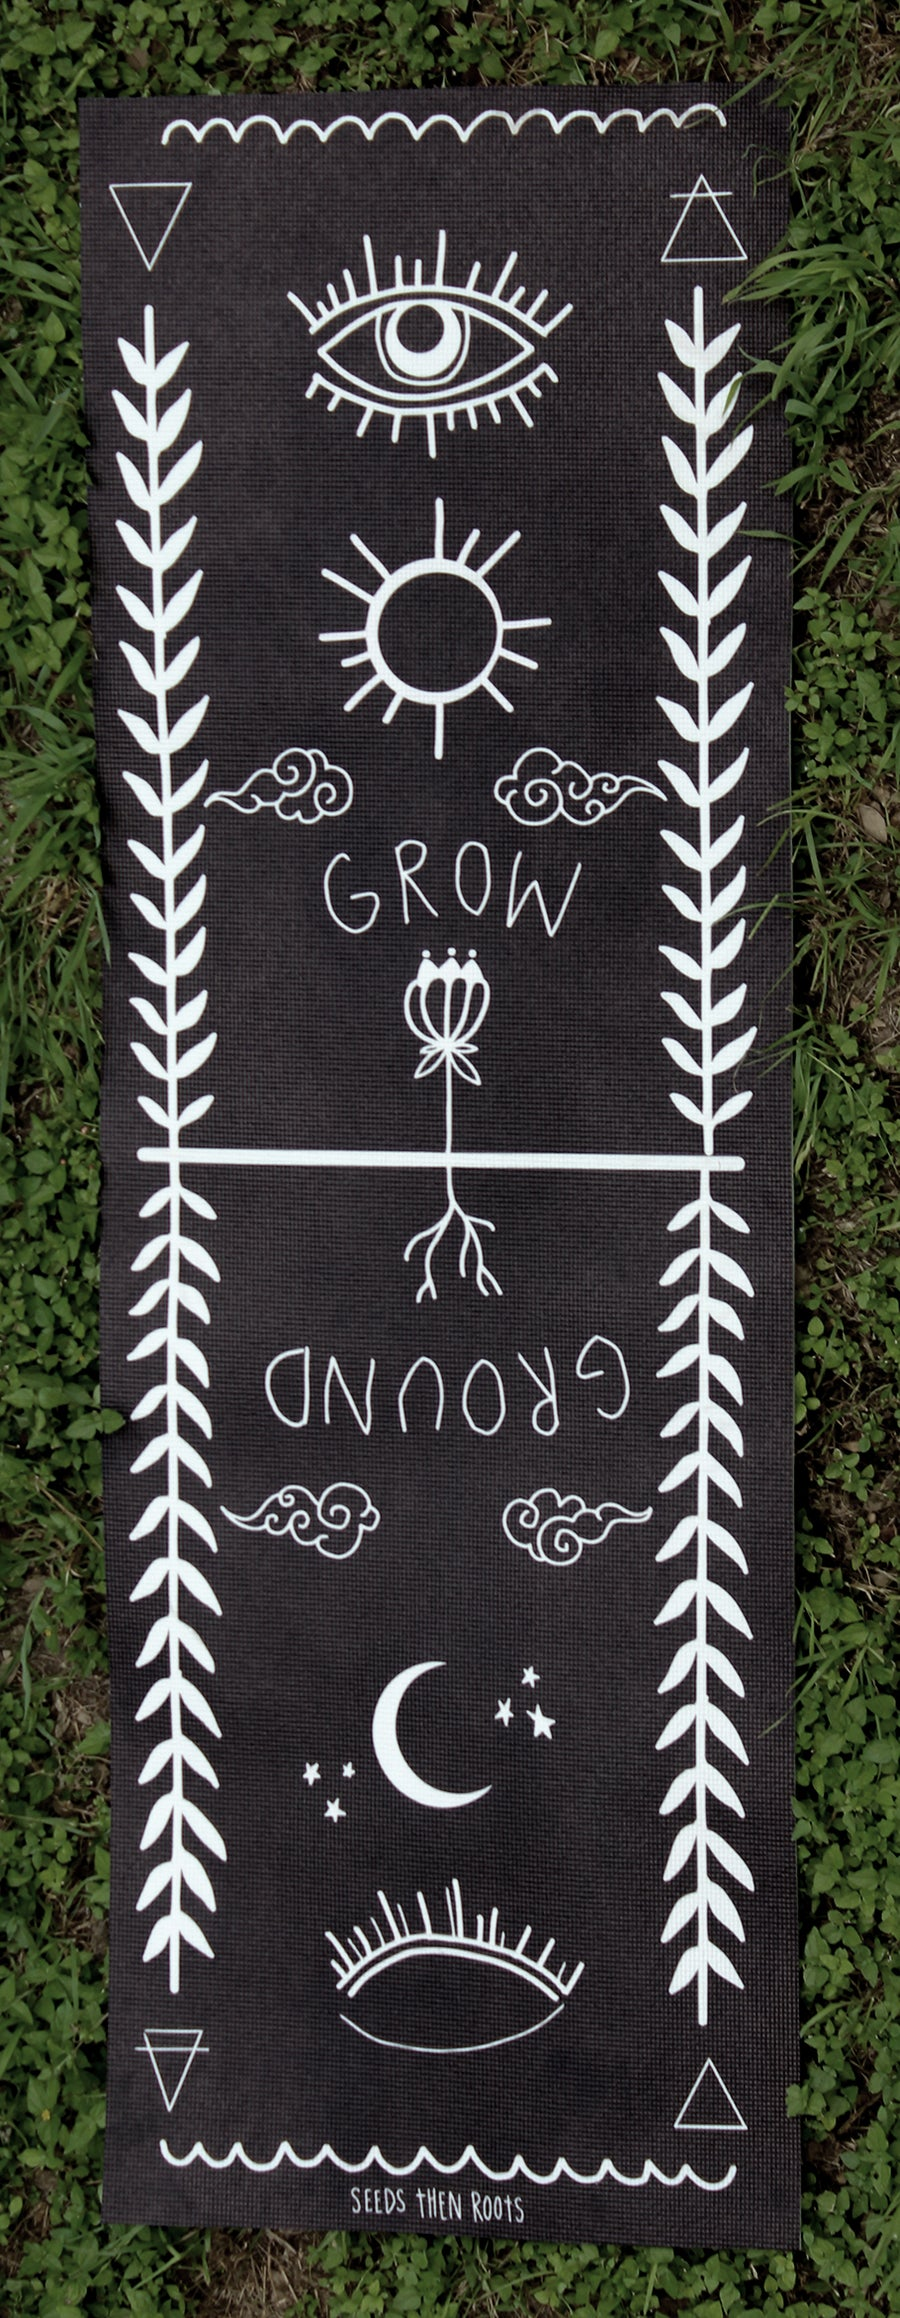 Image of Ground & Grow